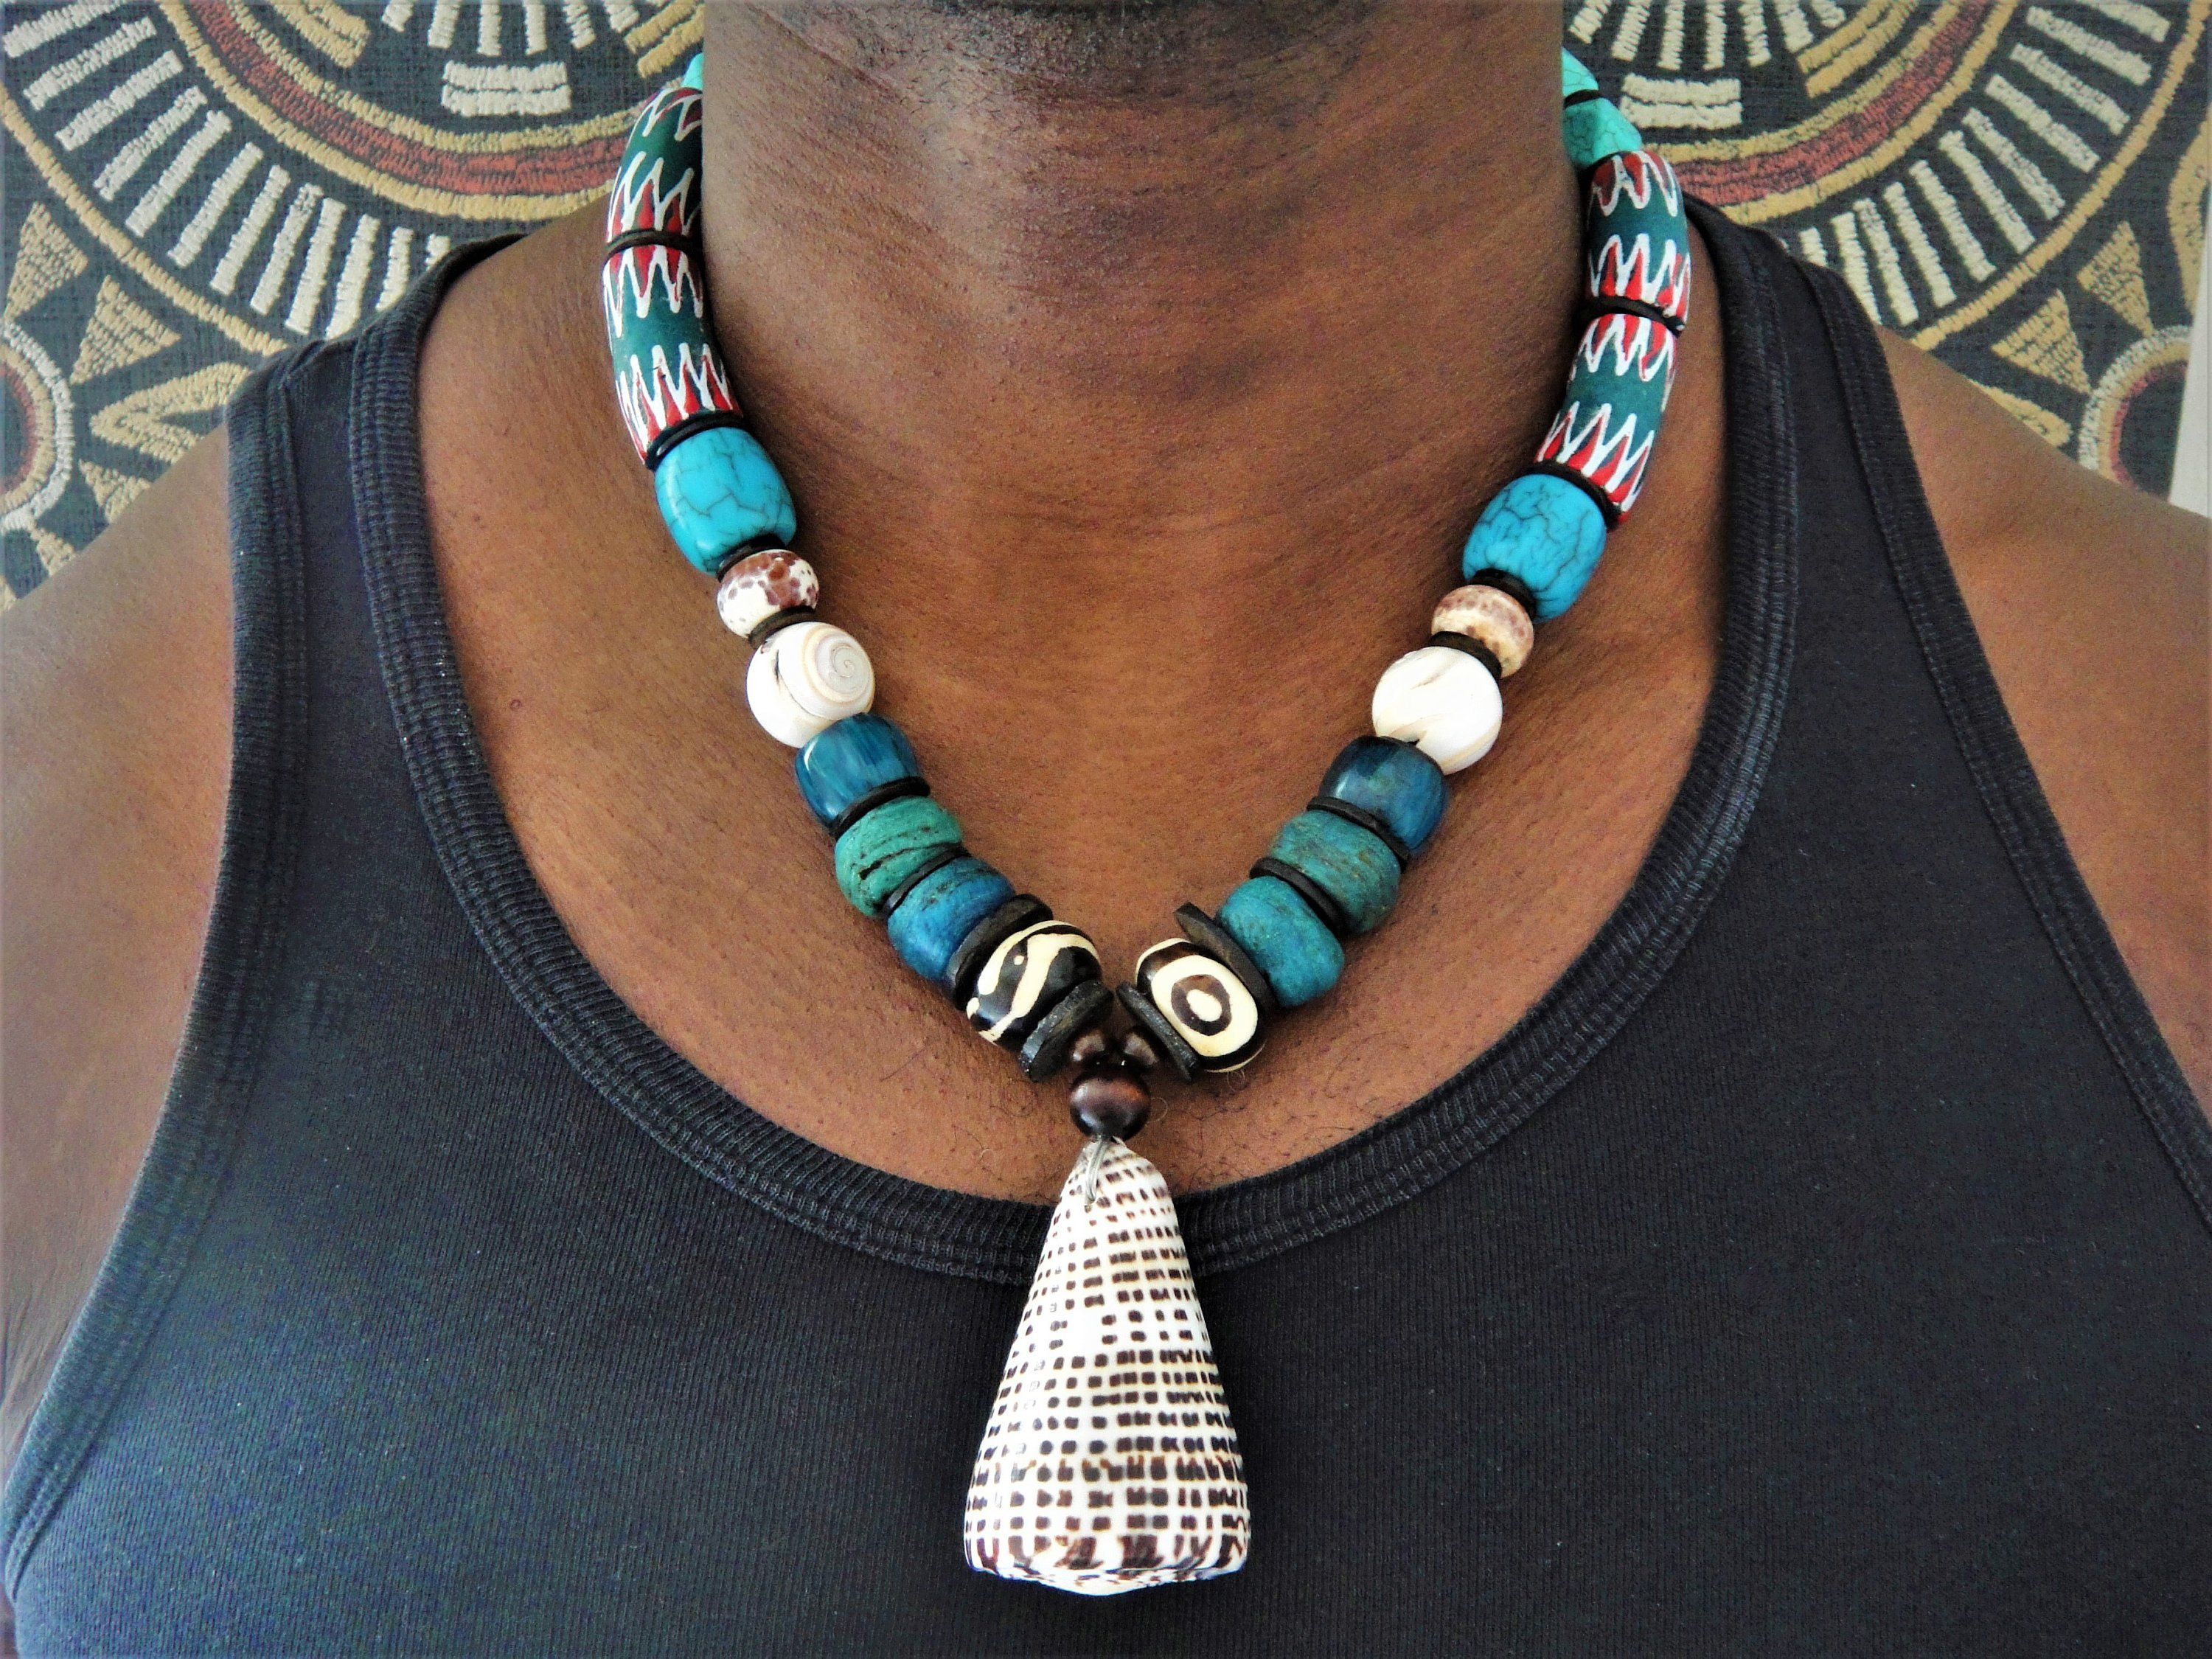 Batik Bone Hebron Kano Beads Chunky Necklace Mens Trade Beads Choker Mens Ethnic Necklace Tribal Necklace African Jewelry